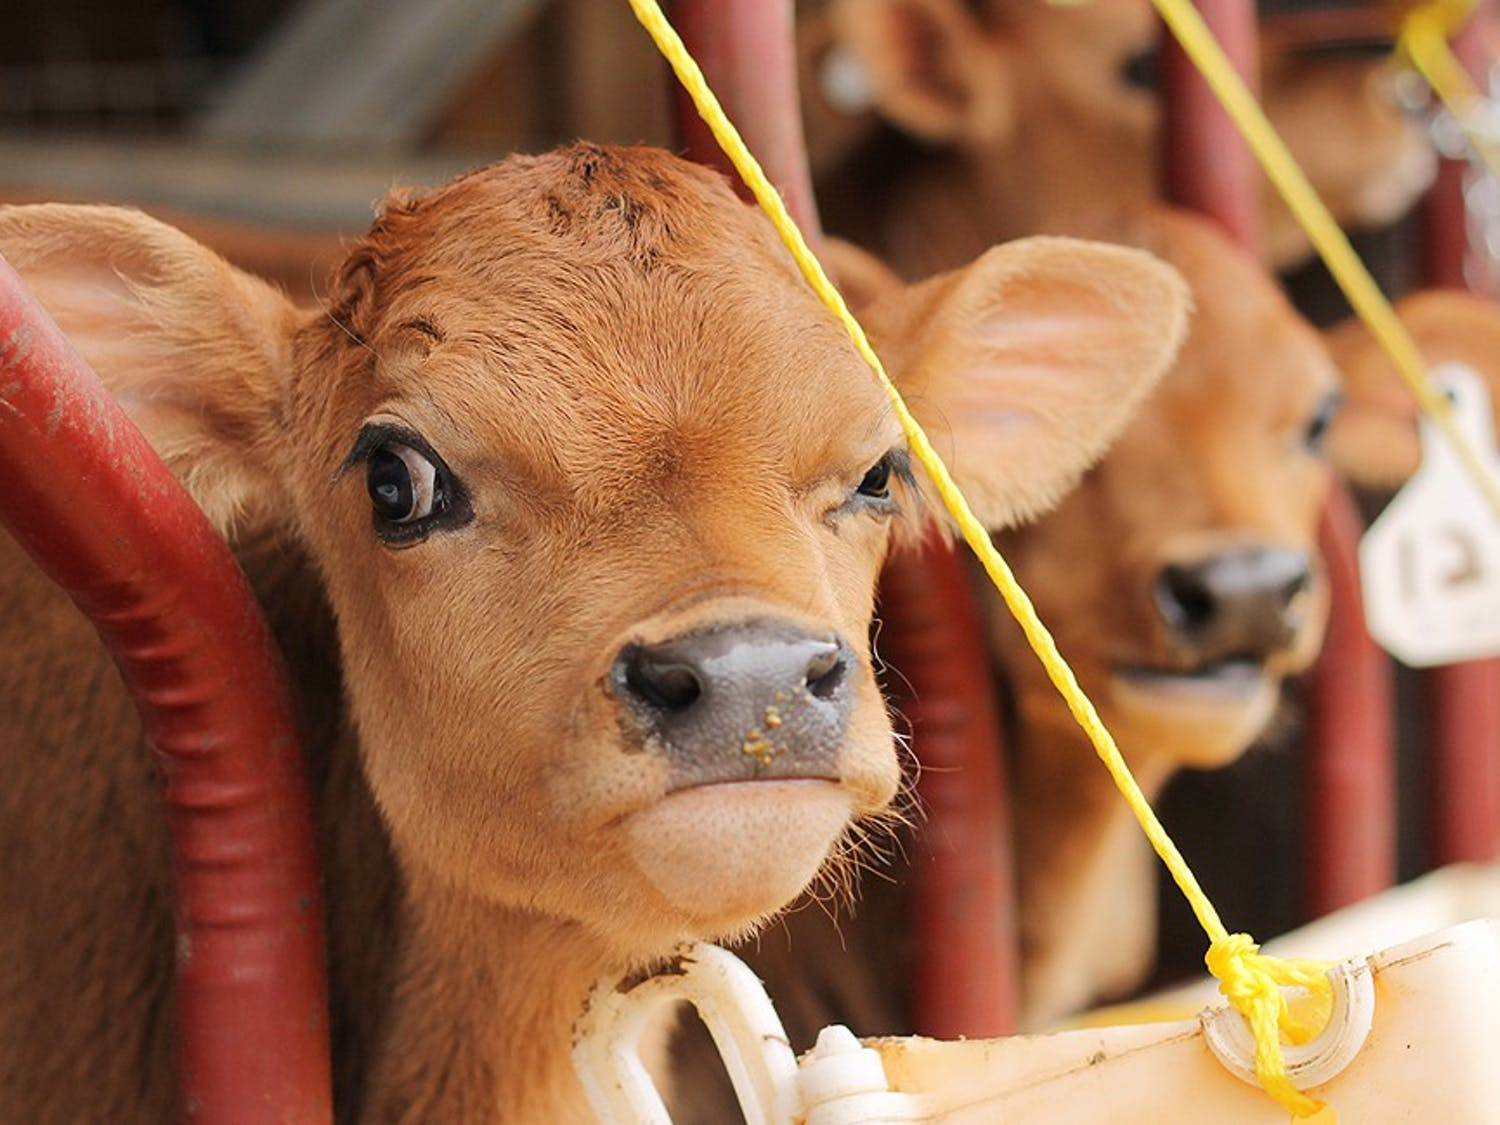 """After the delivery of calves from their cows, the Chapel Hill Creamery decided to involve the community in naming the new additions to the farm. At the Piedmont Farm Tour on April 27th and 28th, there will be a 'name the calf' contest where attendees can suggest a name for all the calves born at the Creamery in March and April. Portia McKnight, co-founder of the creamery with Flo Hawley, said, """"We have a new calf that was born just this morning."""""""